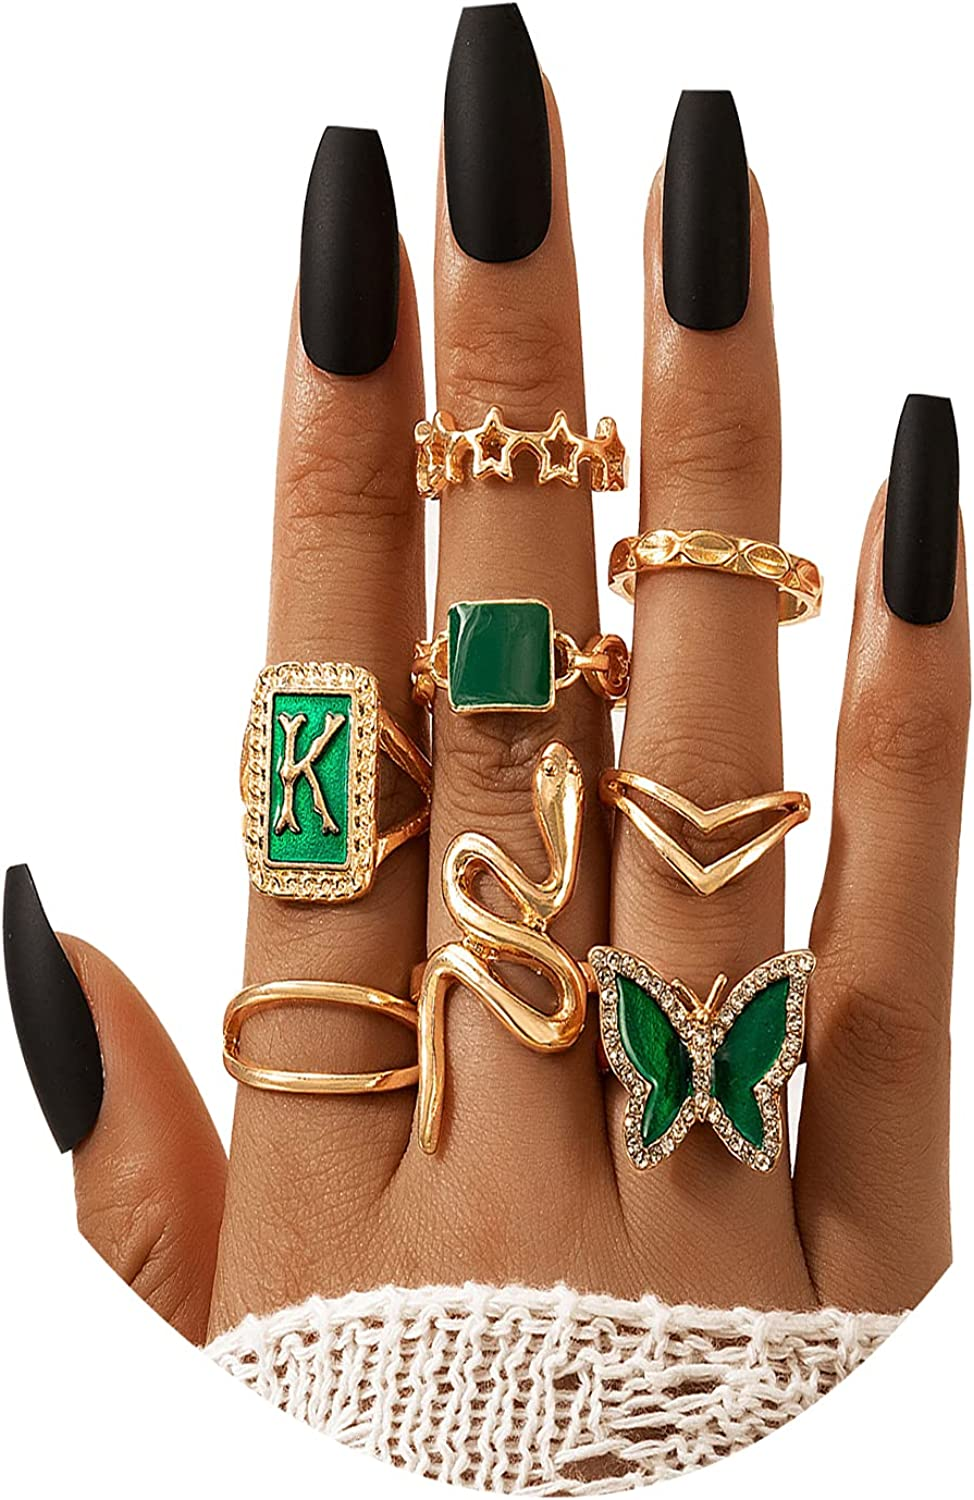 Popular brand in the world Gold Knuckle Rings Set for Women Teen Girls low-pricing Peal Stacking Chain